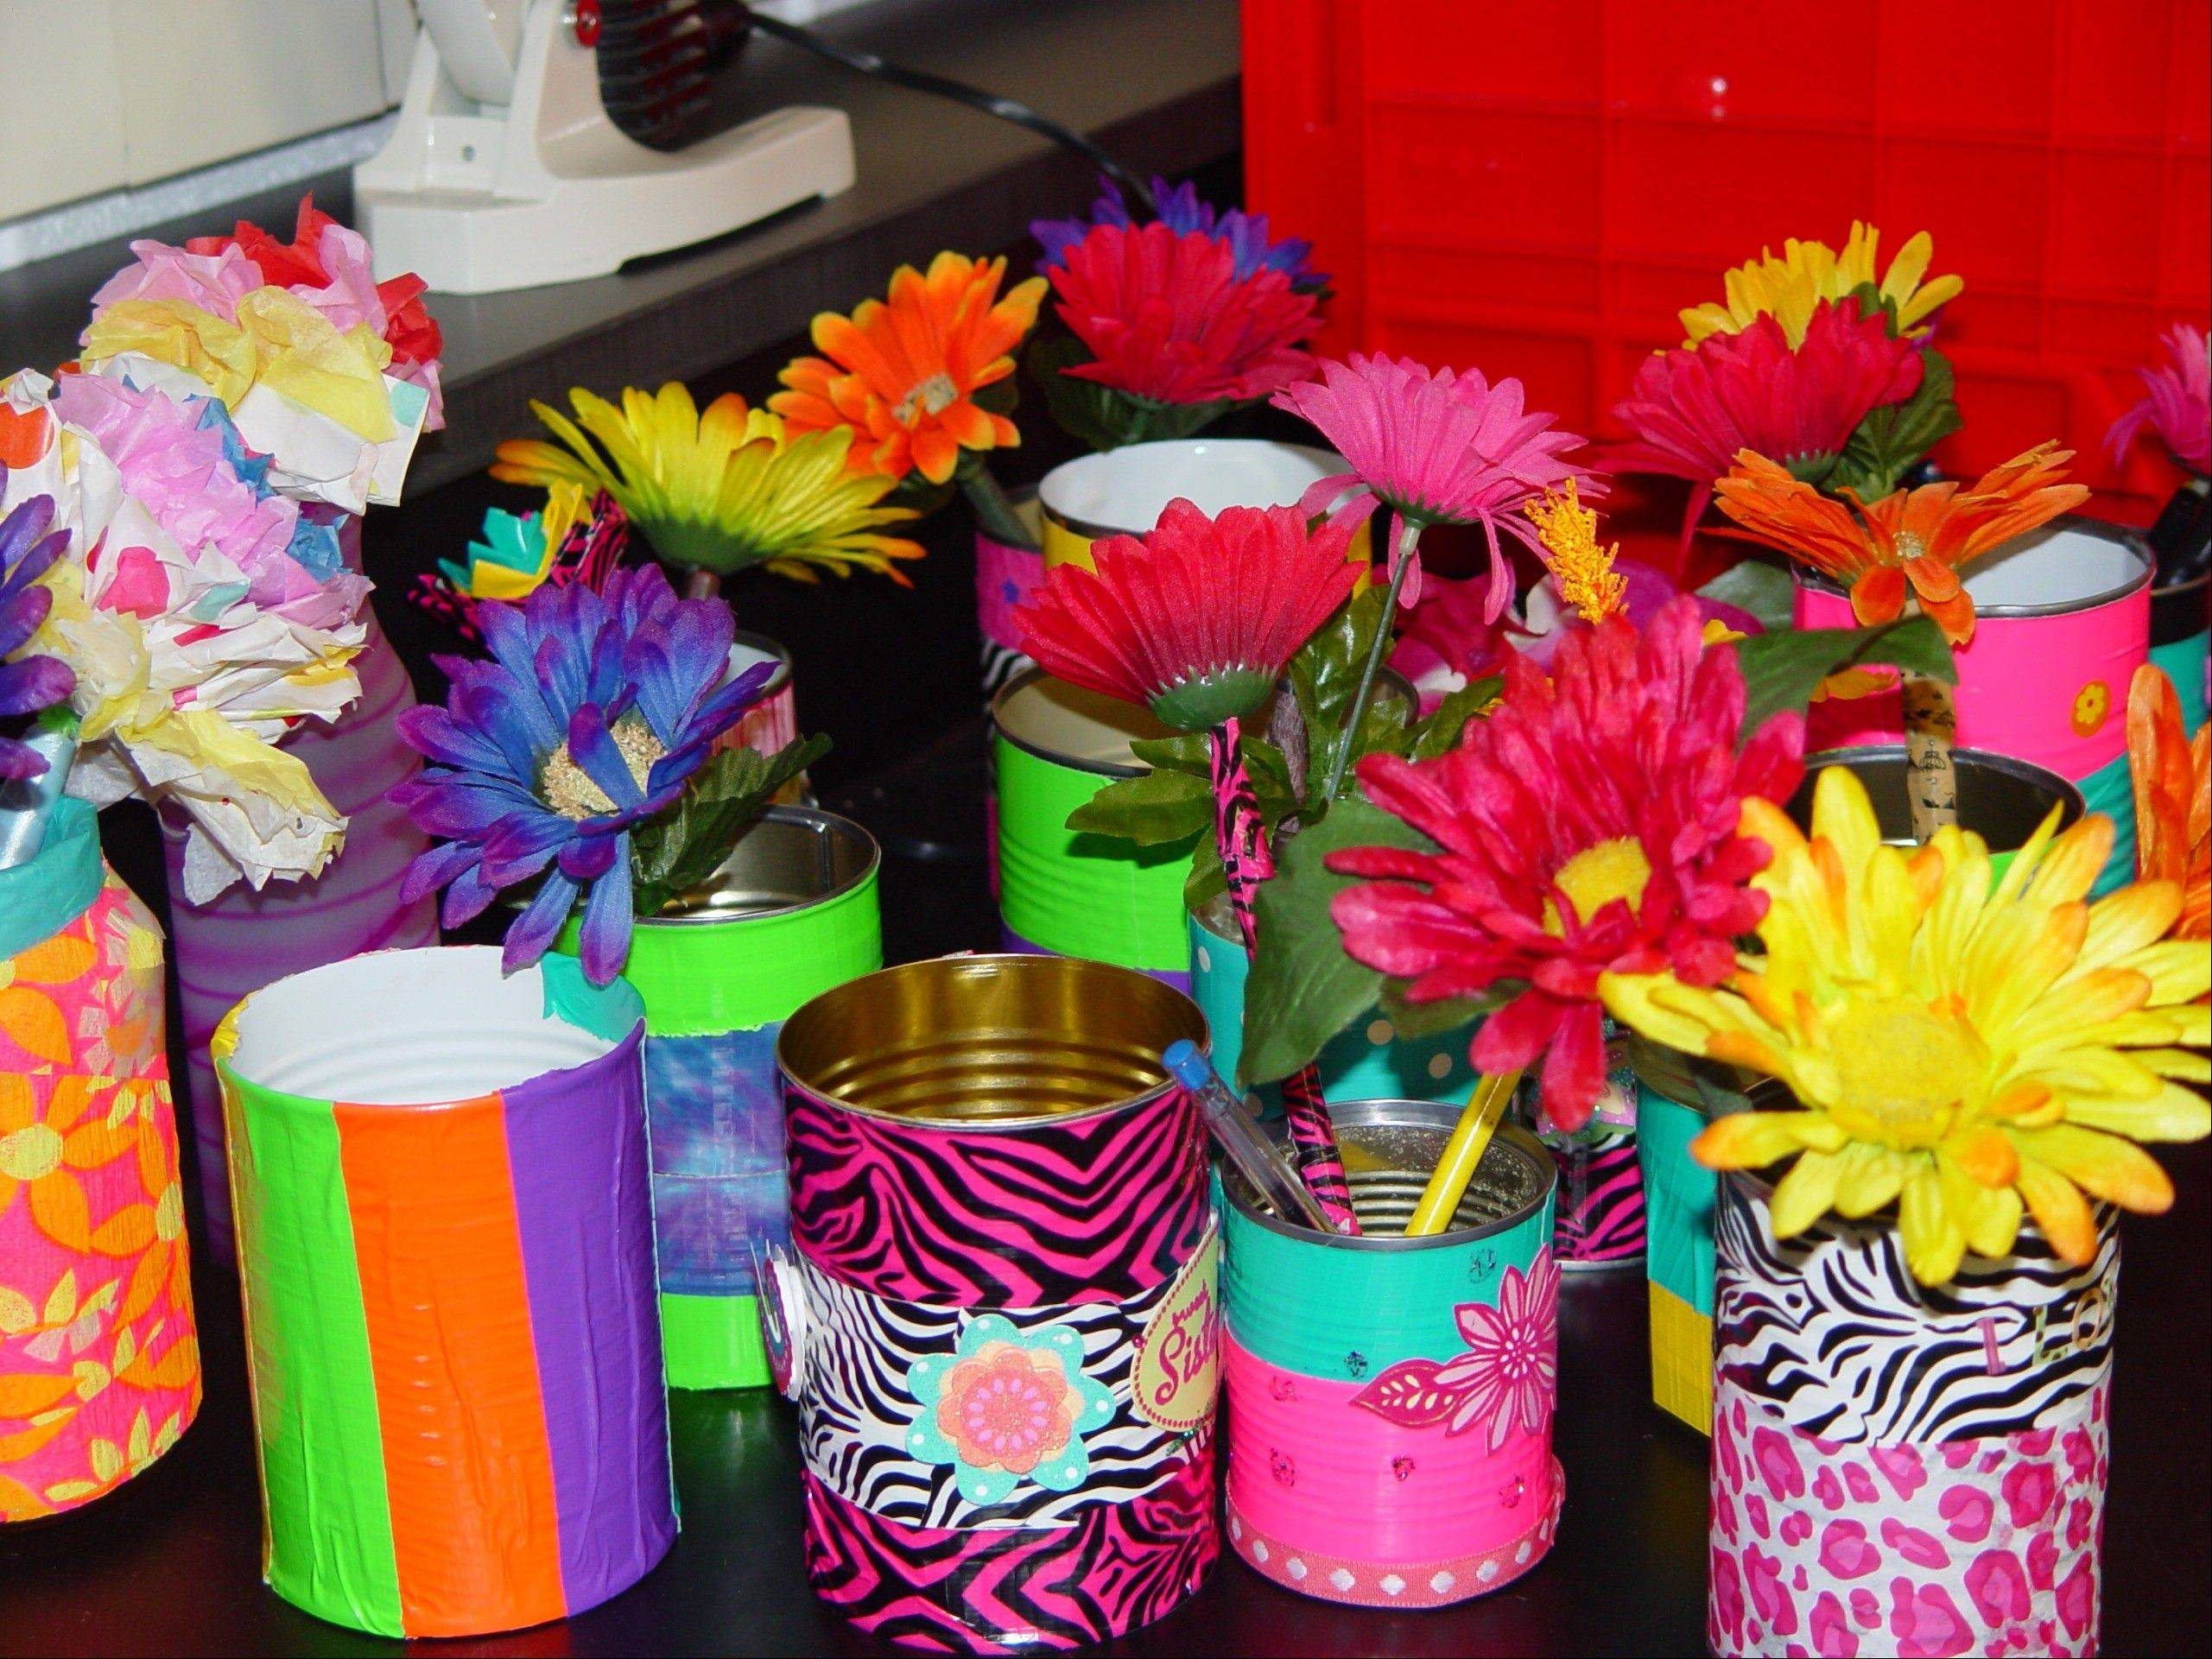 Students created colorful pencil flowers to fill homemade containers for residents at Friendship Village and PADS shelters.